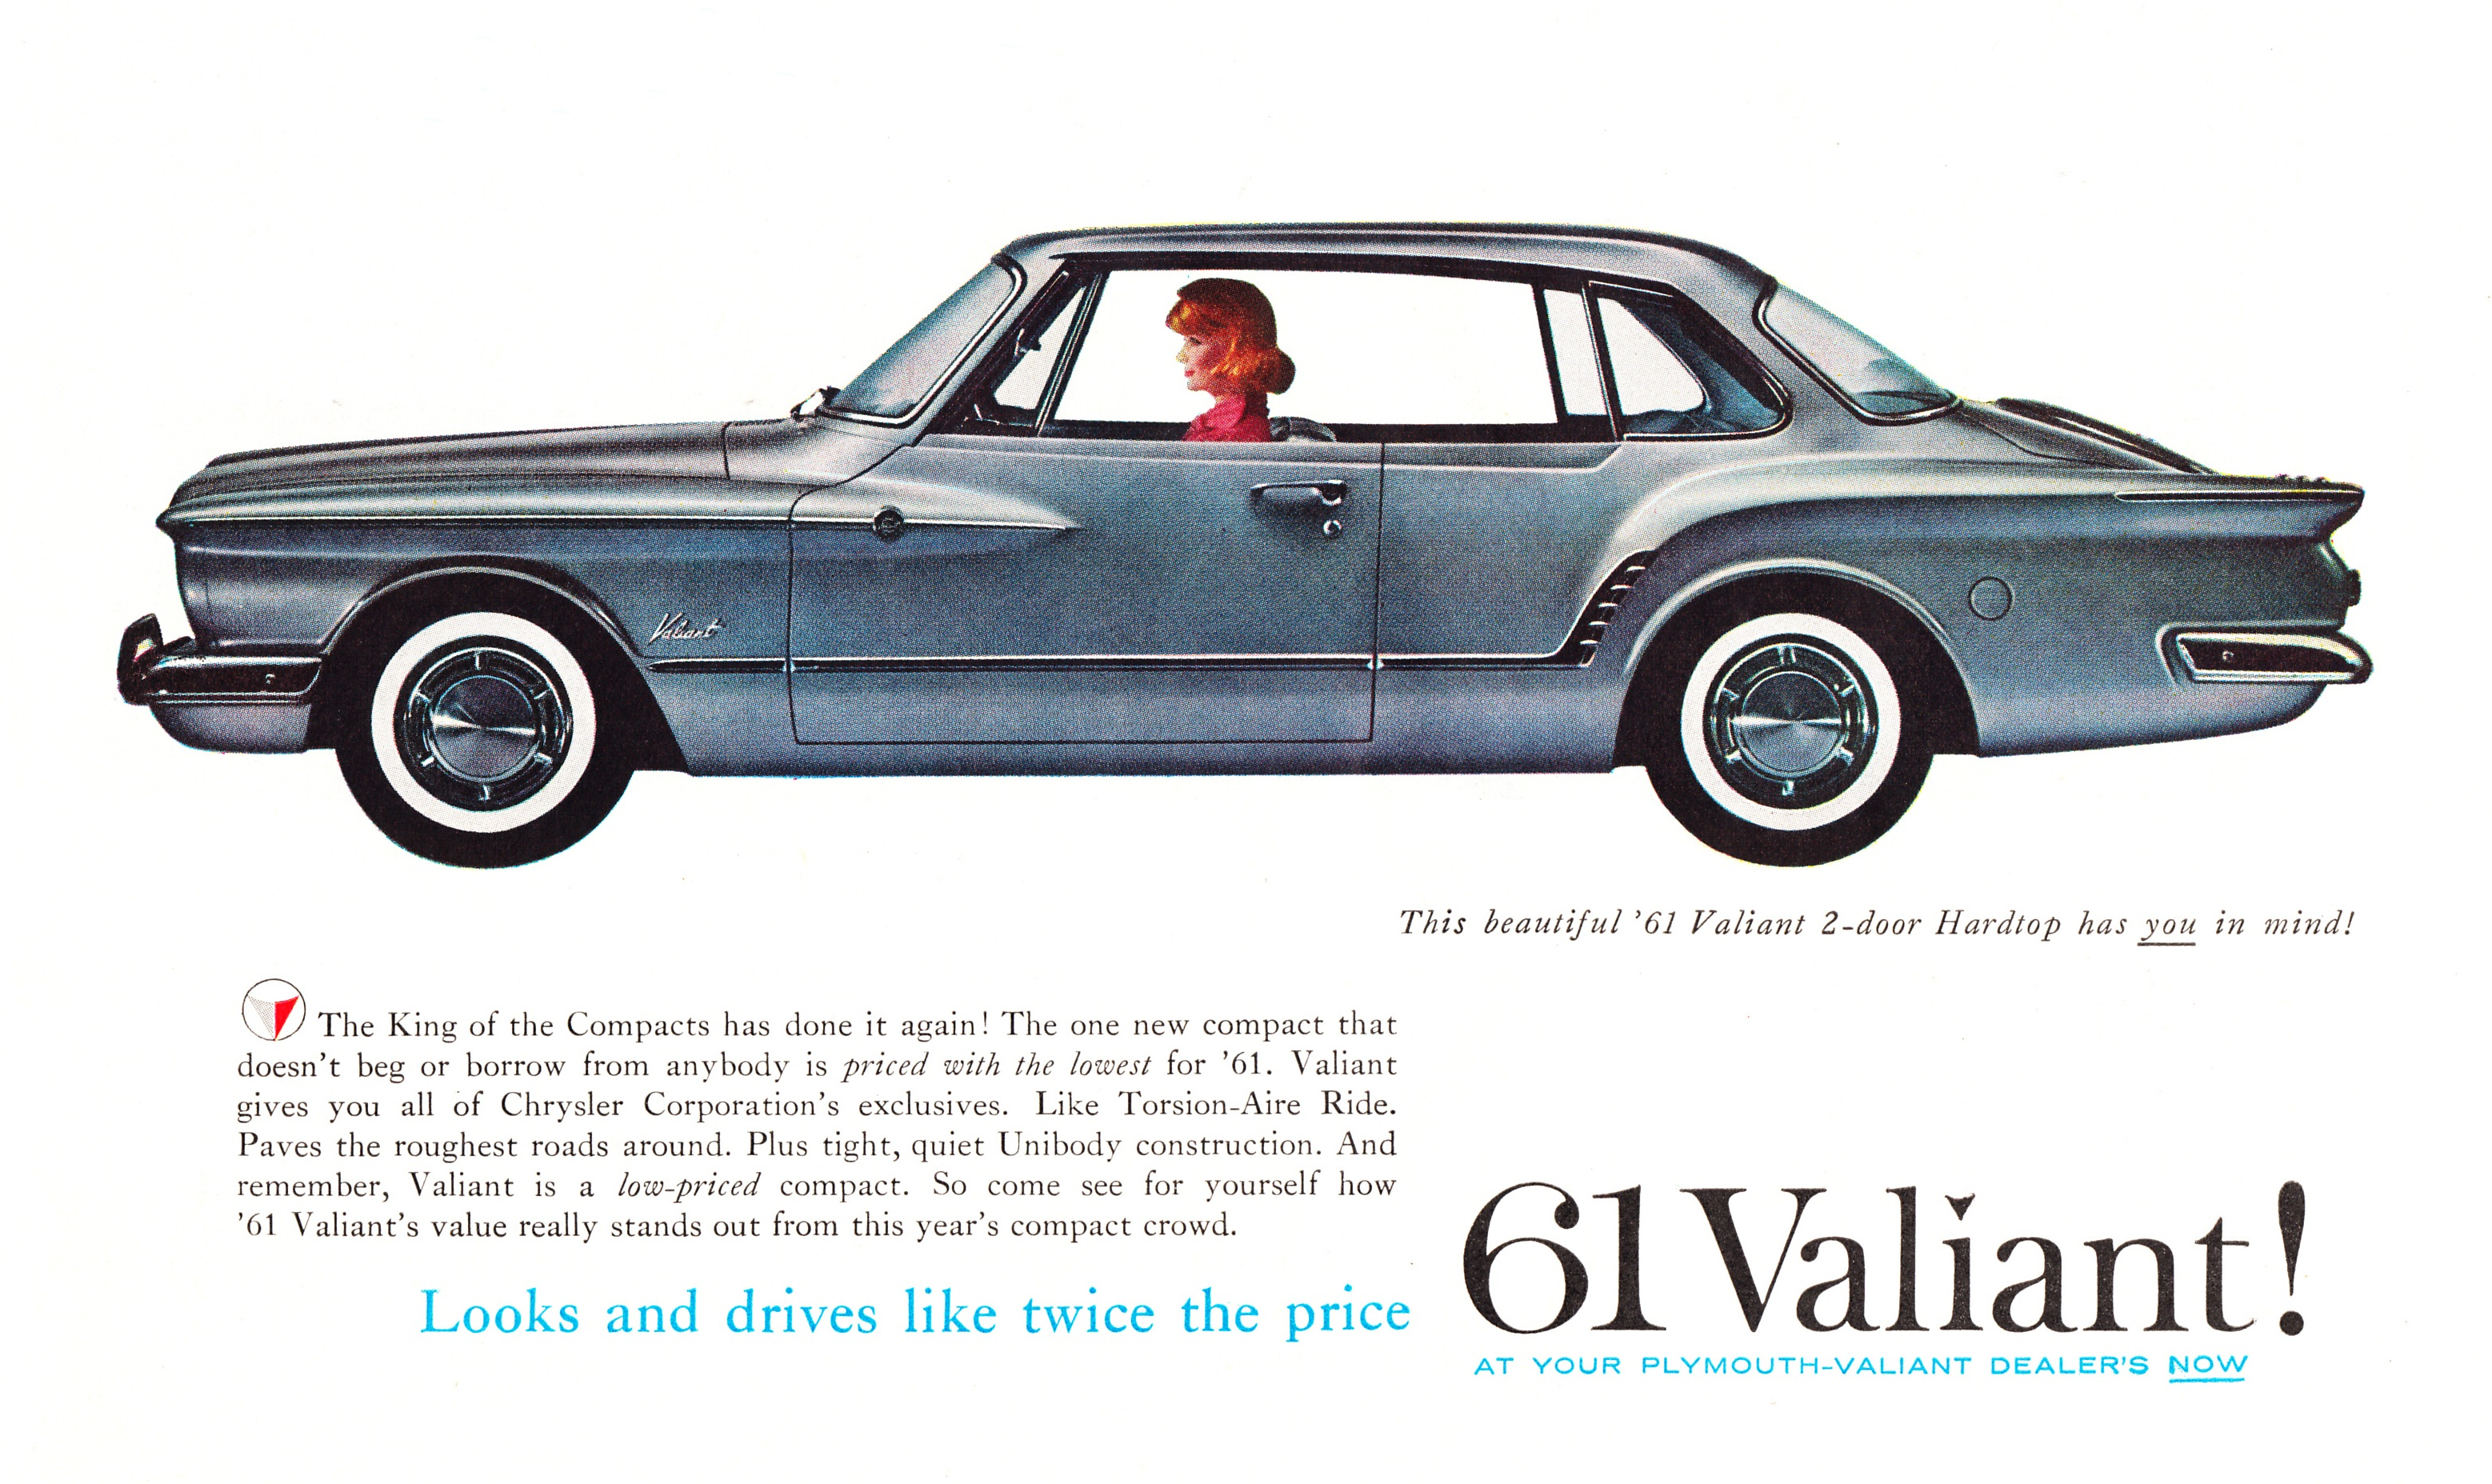 1961 Plymouth Valiant 2-Door Hardtop -  published in The Saturday Evening Post - October 1, 1960